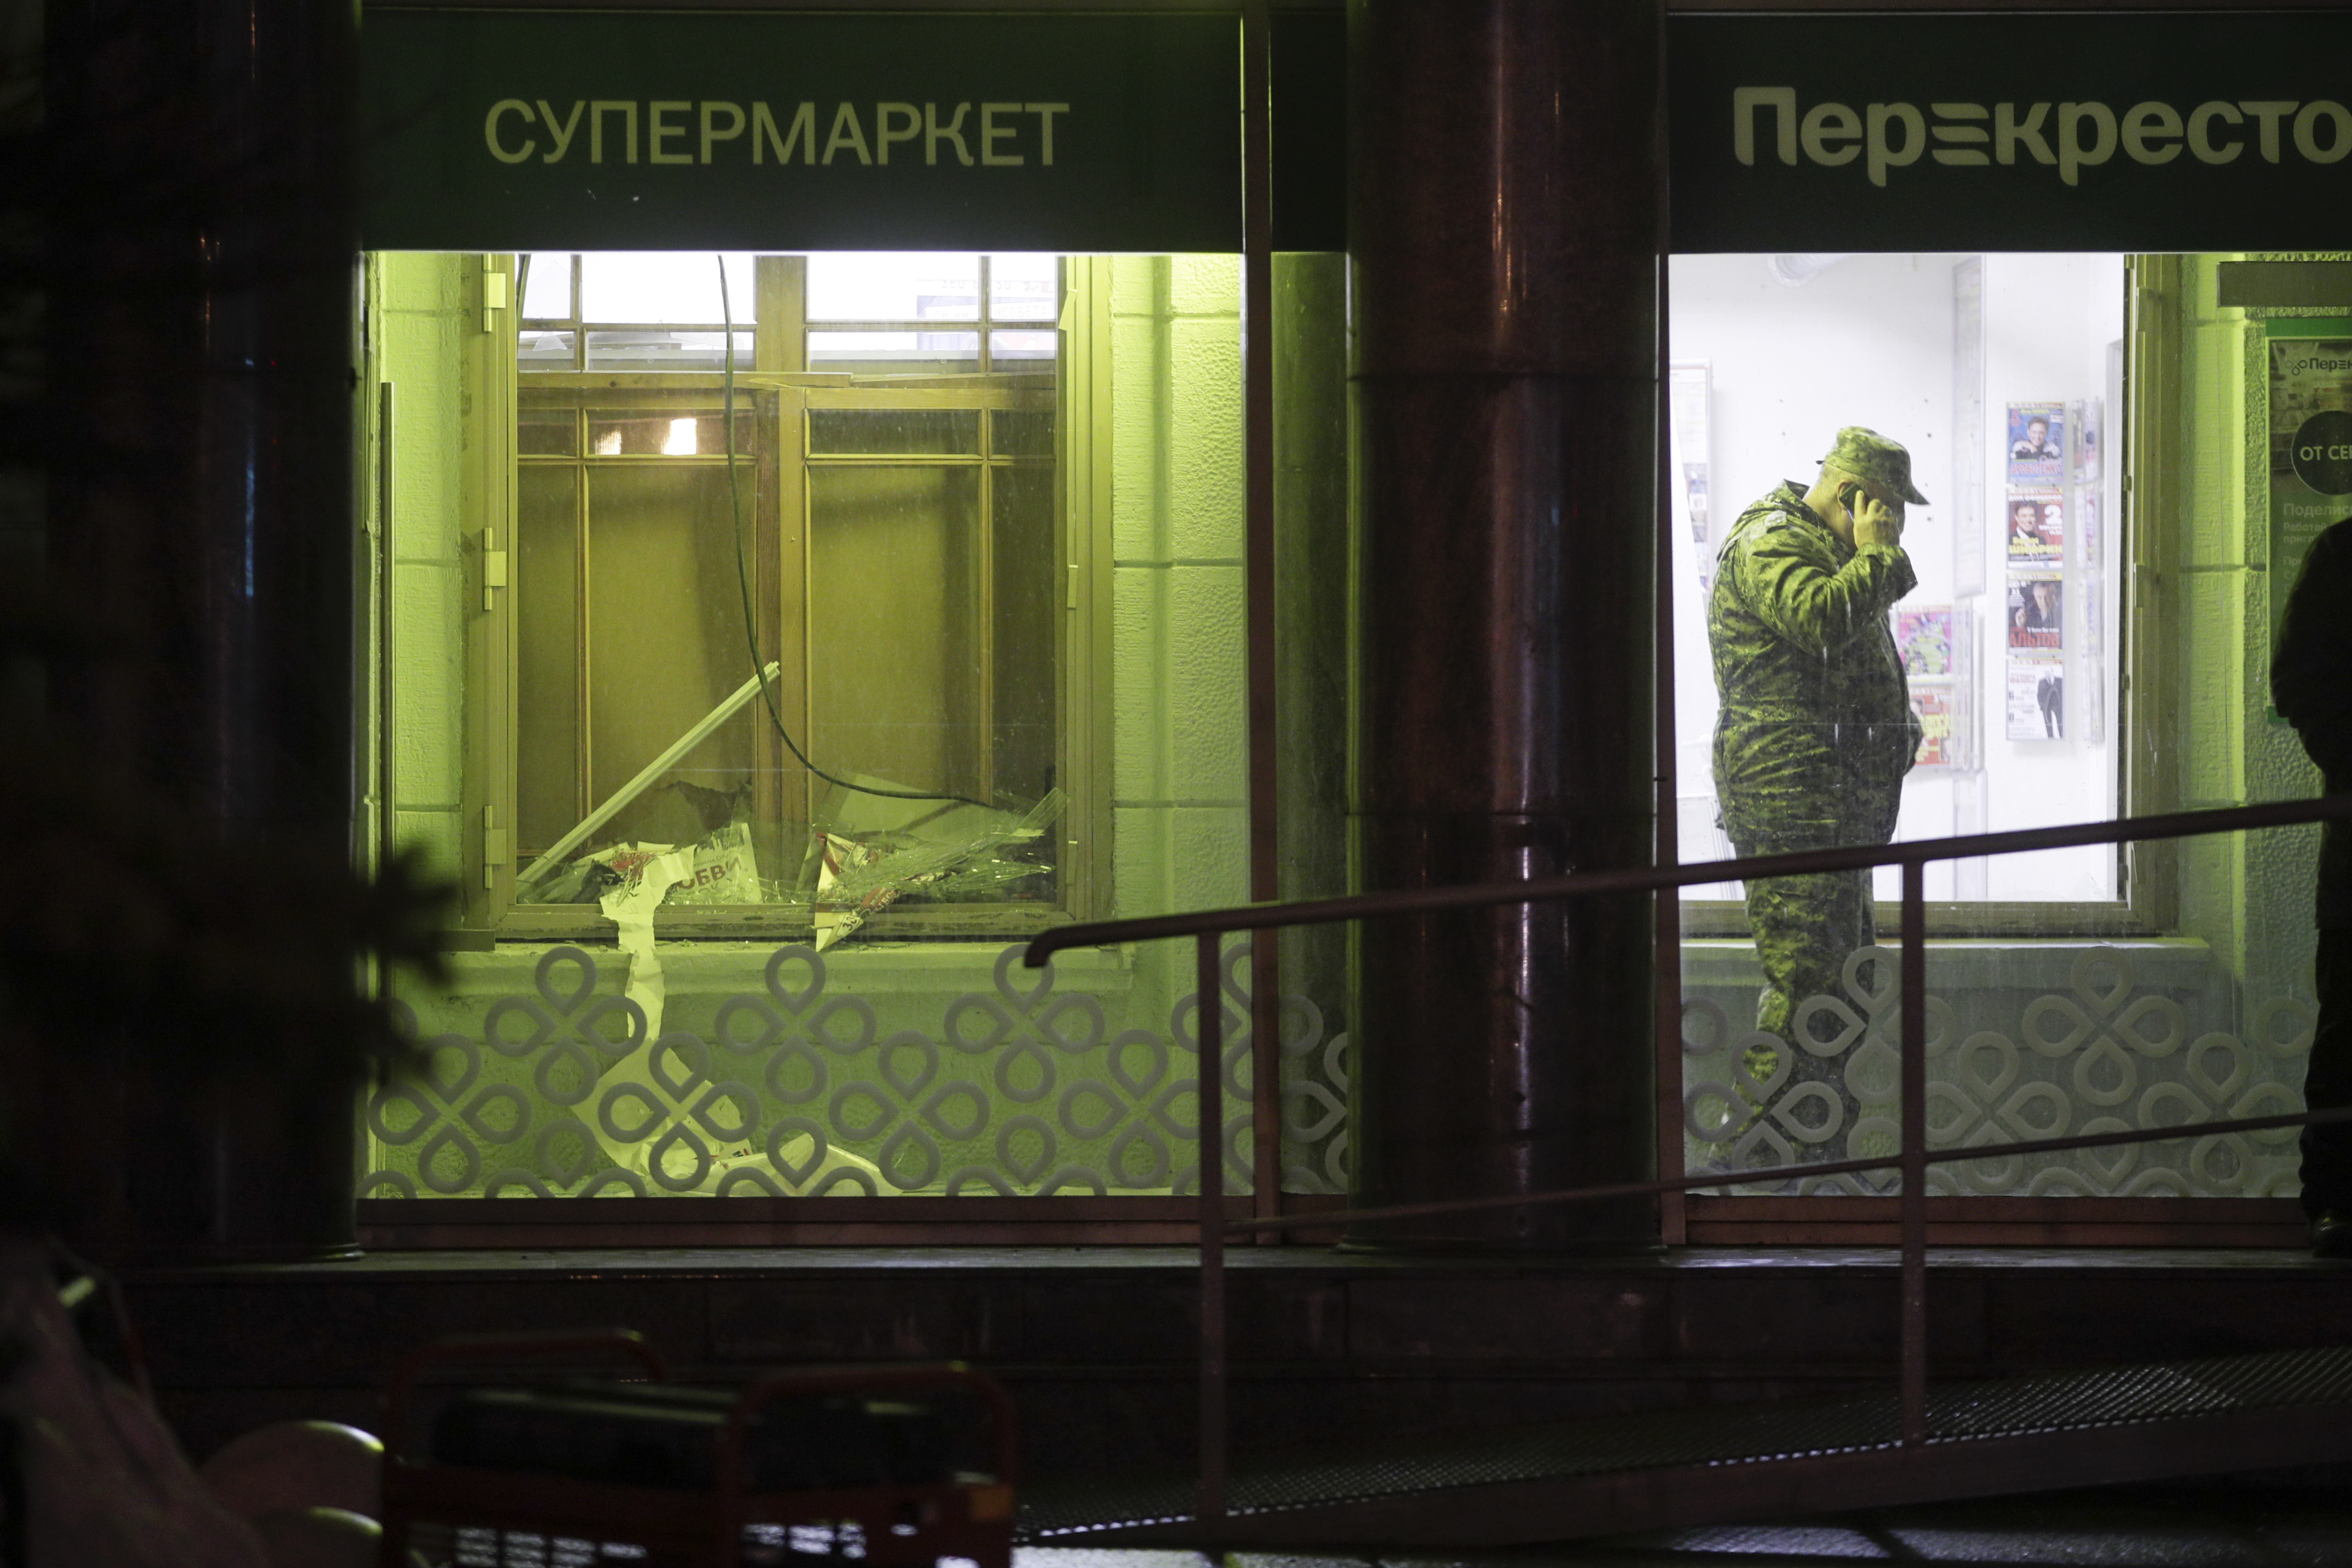 An investigator speaks on the phone inside a supermarket, after an explosion in St.Petersburg, Russia, Wednesday, Dec. 27, 2017. Russian officials say at least 10 people have been injured by an explosion at a supermarket in St. Petersburg. (AP Photo/Dmitri Lovetsky)